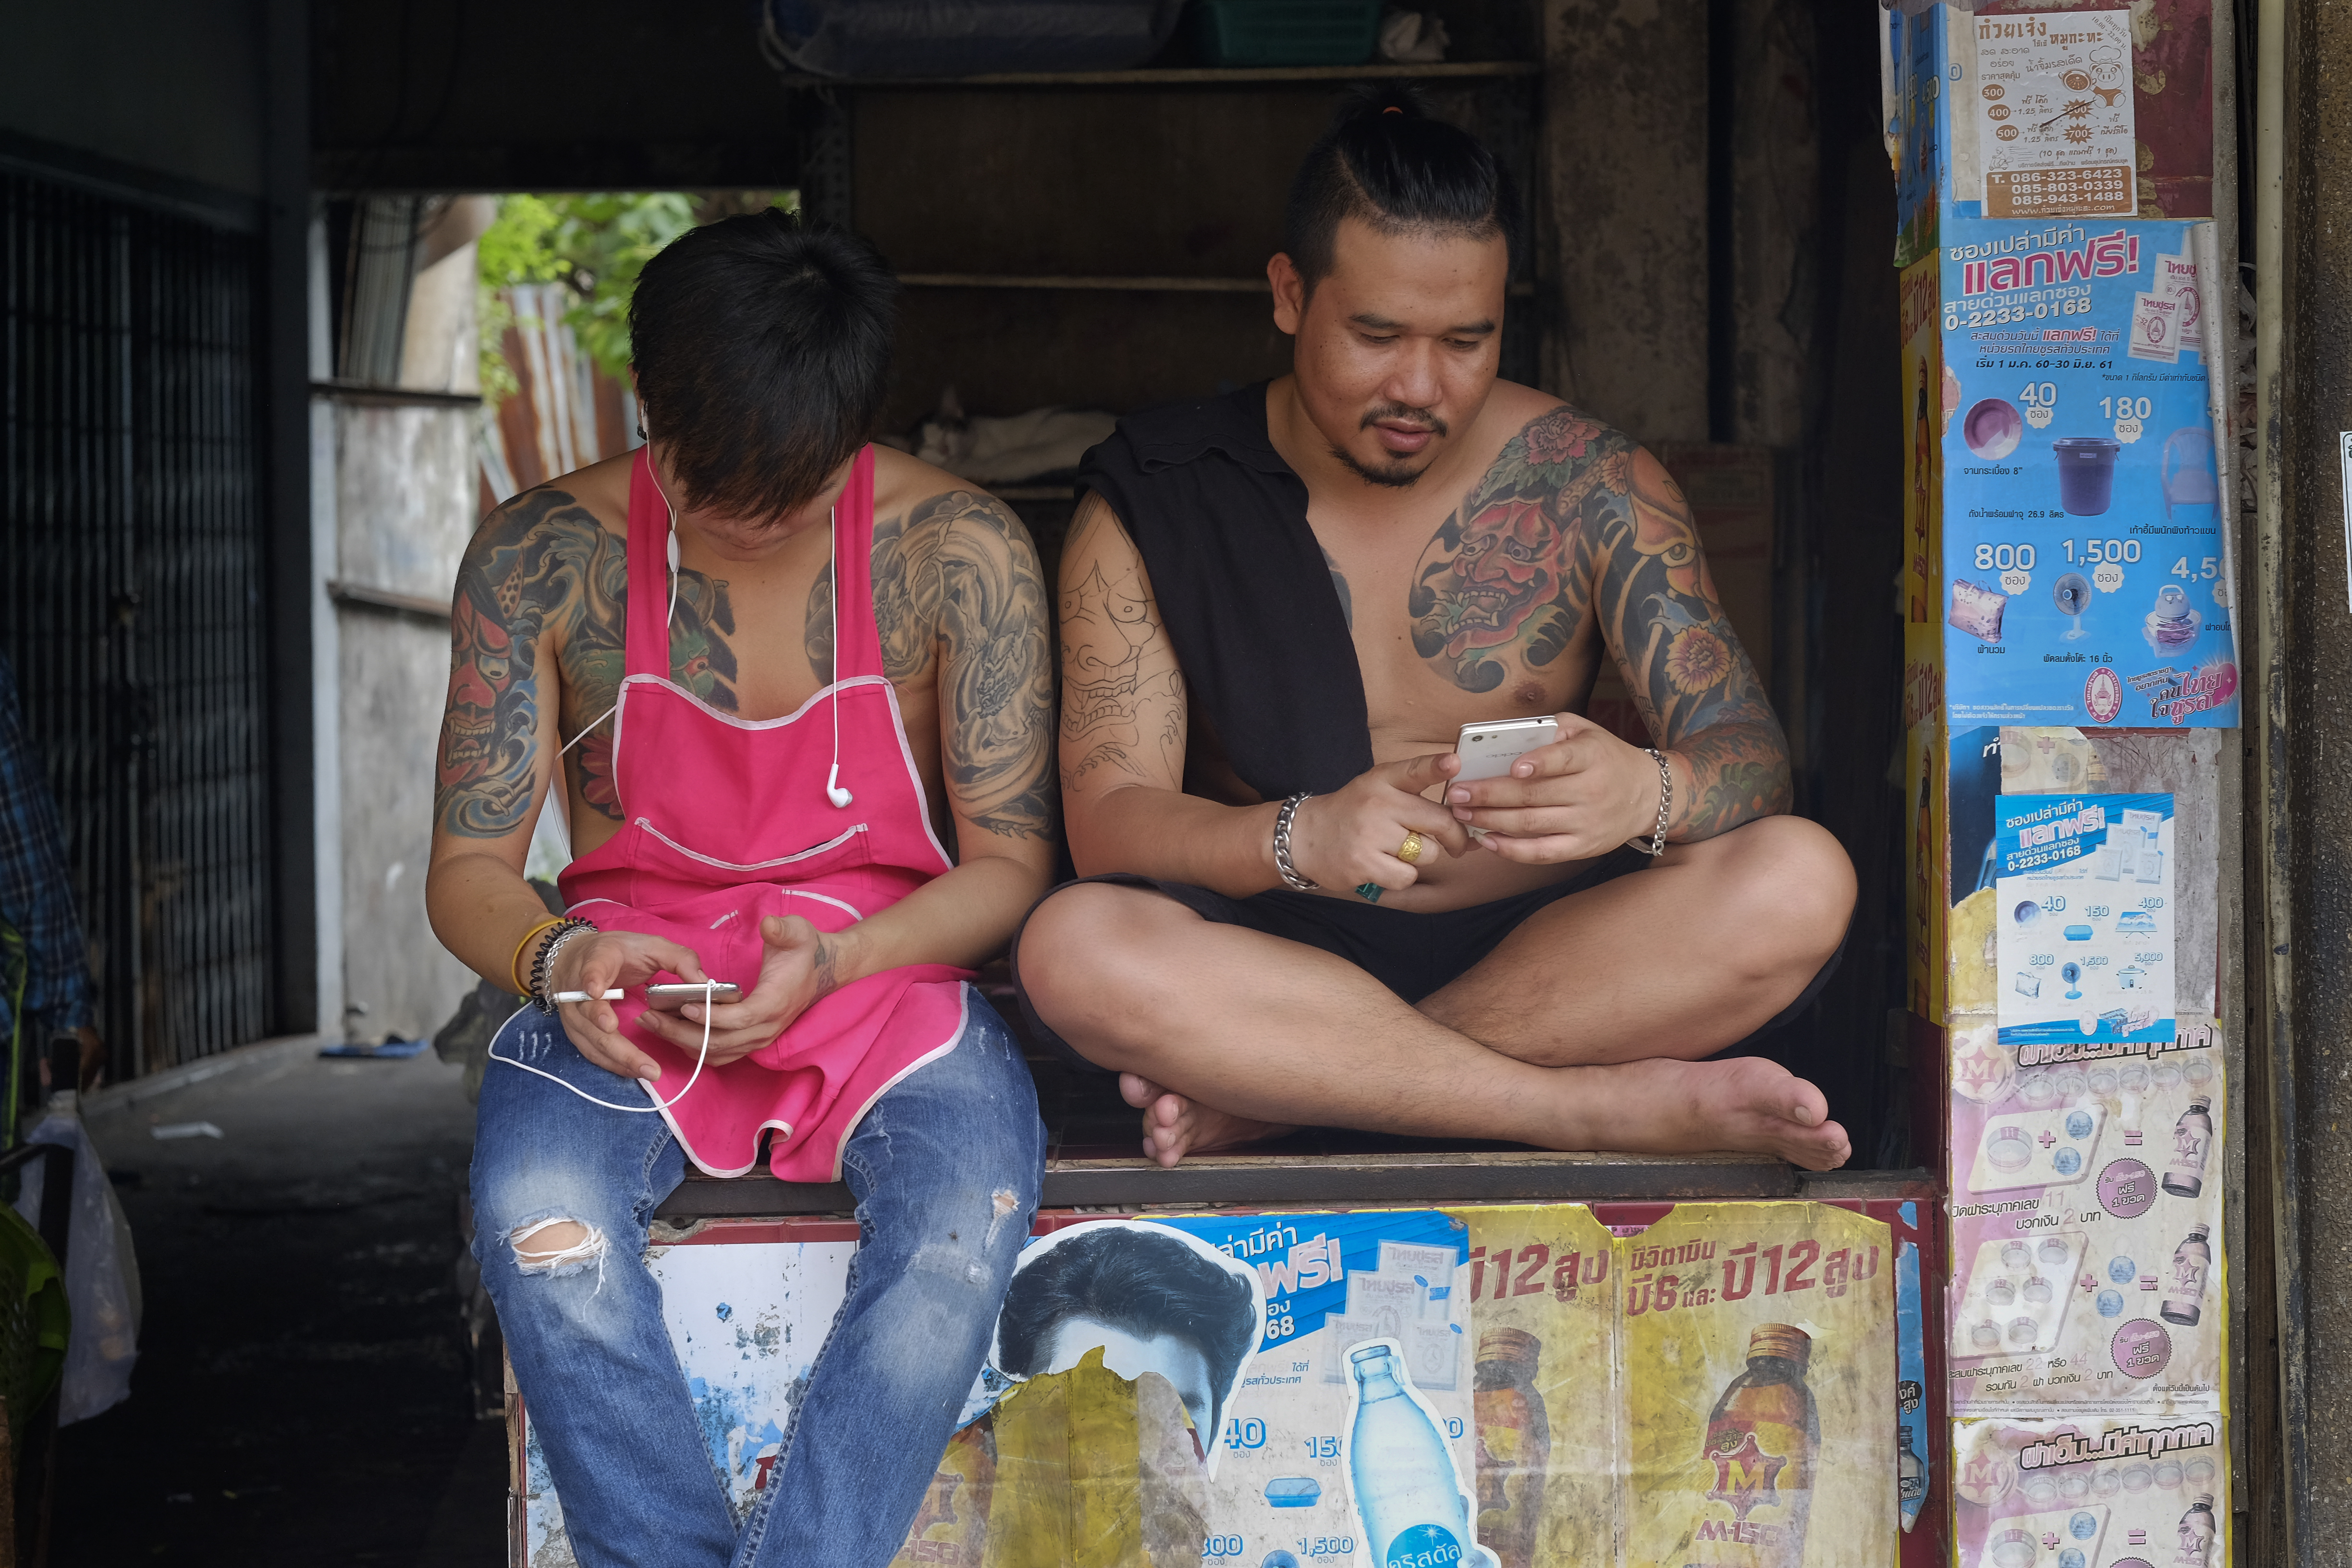 Two heavily tattooed Thai men sit in the back of a truck, each looking at his phone.